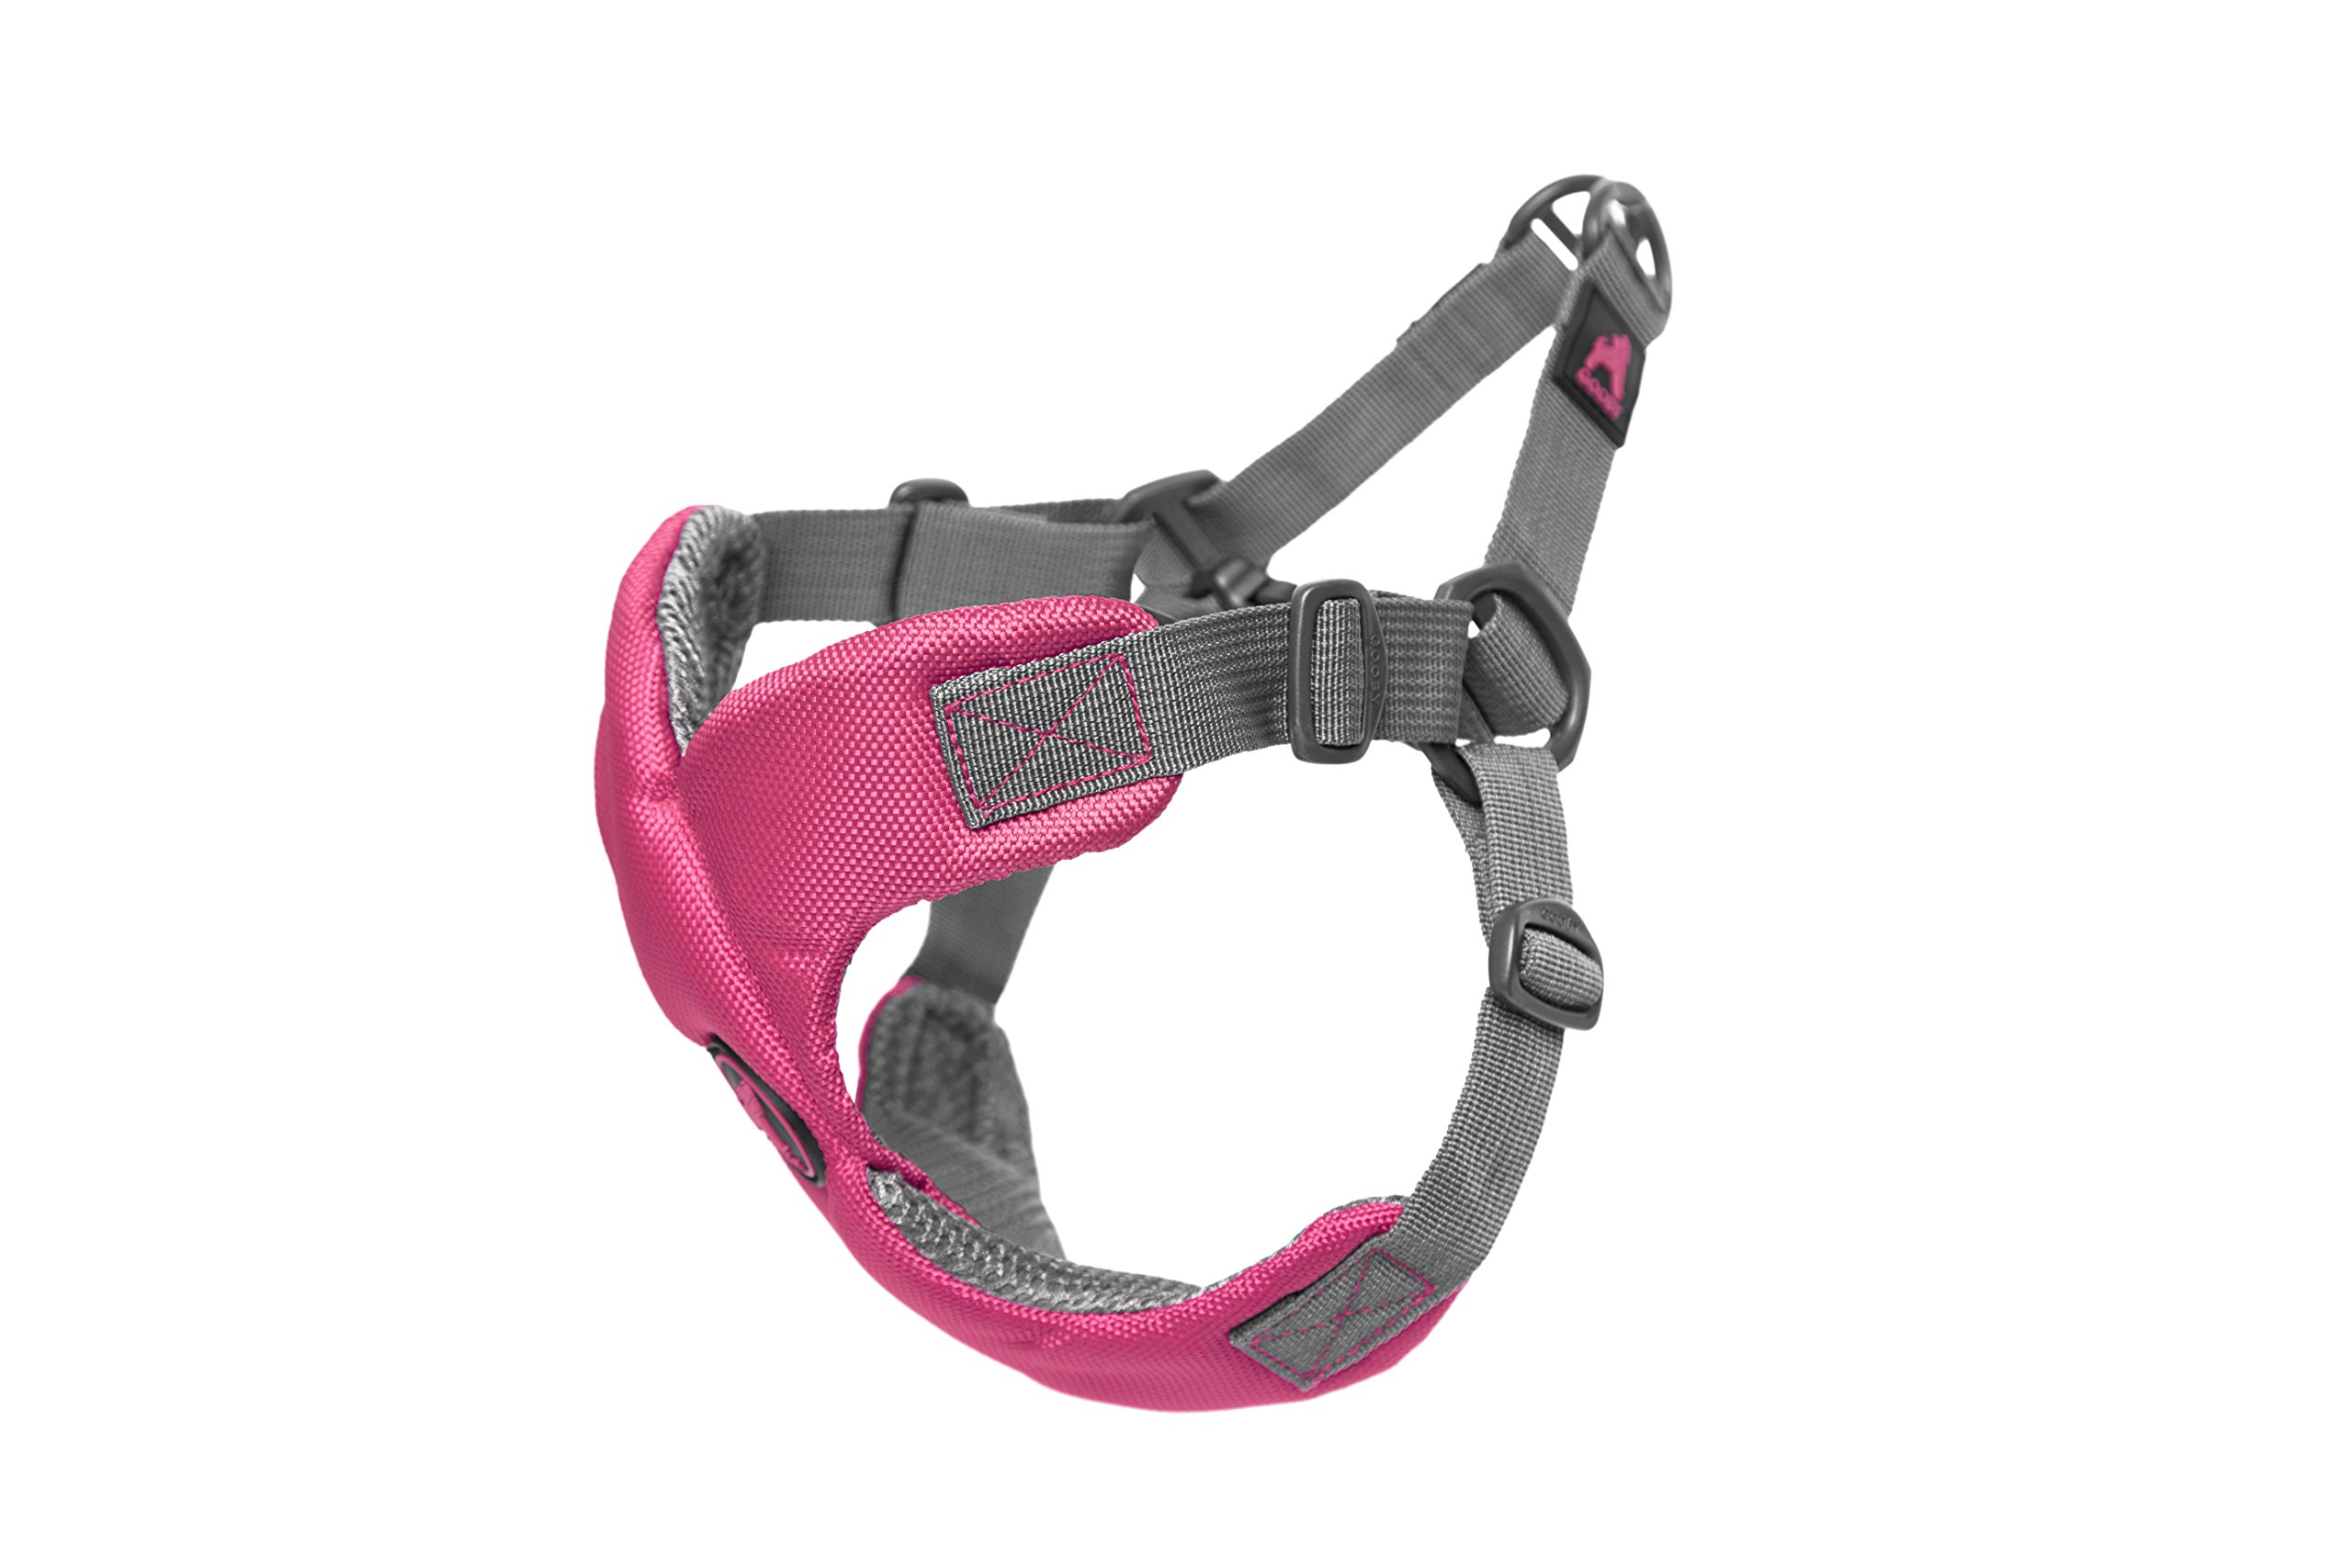 [Old Version] Gooby Escape Free Memory Foam Harness for Small Dogs, Pink, Large by Gooby (Image #2)